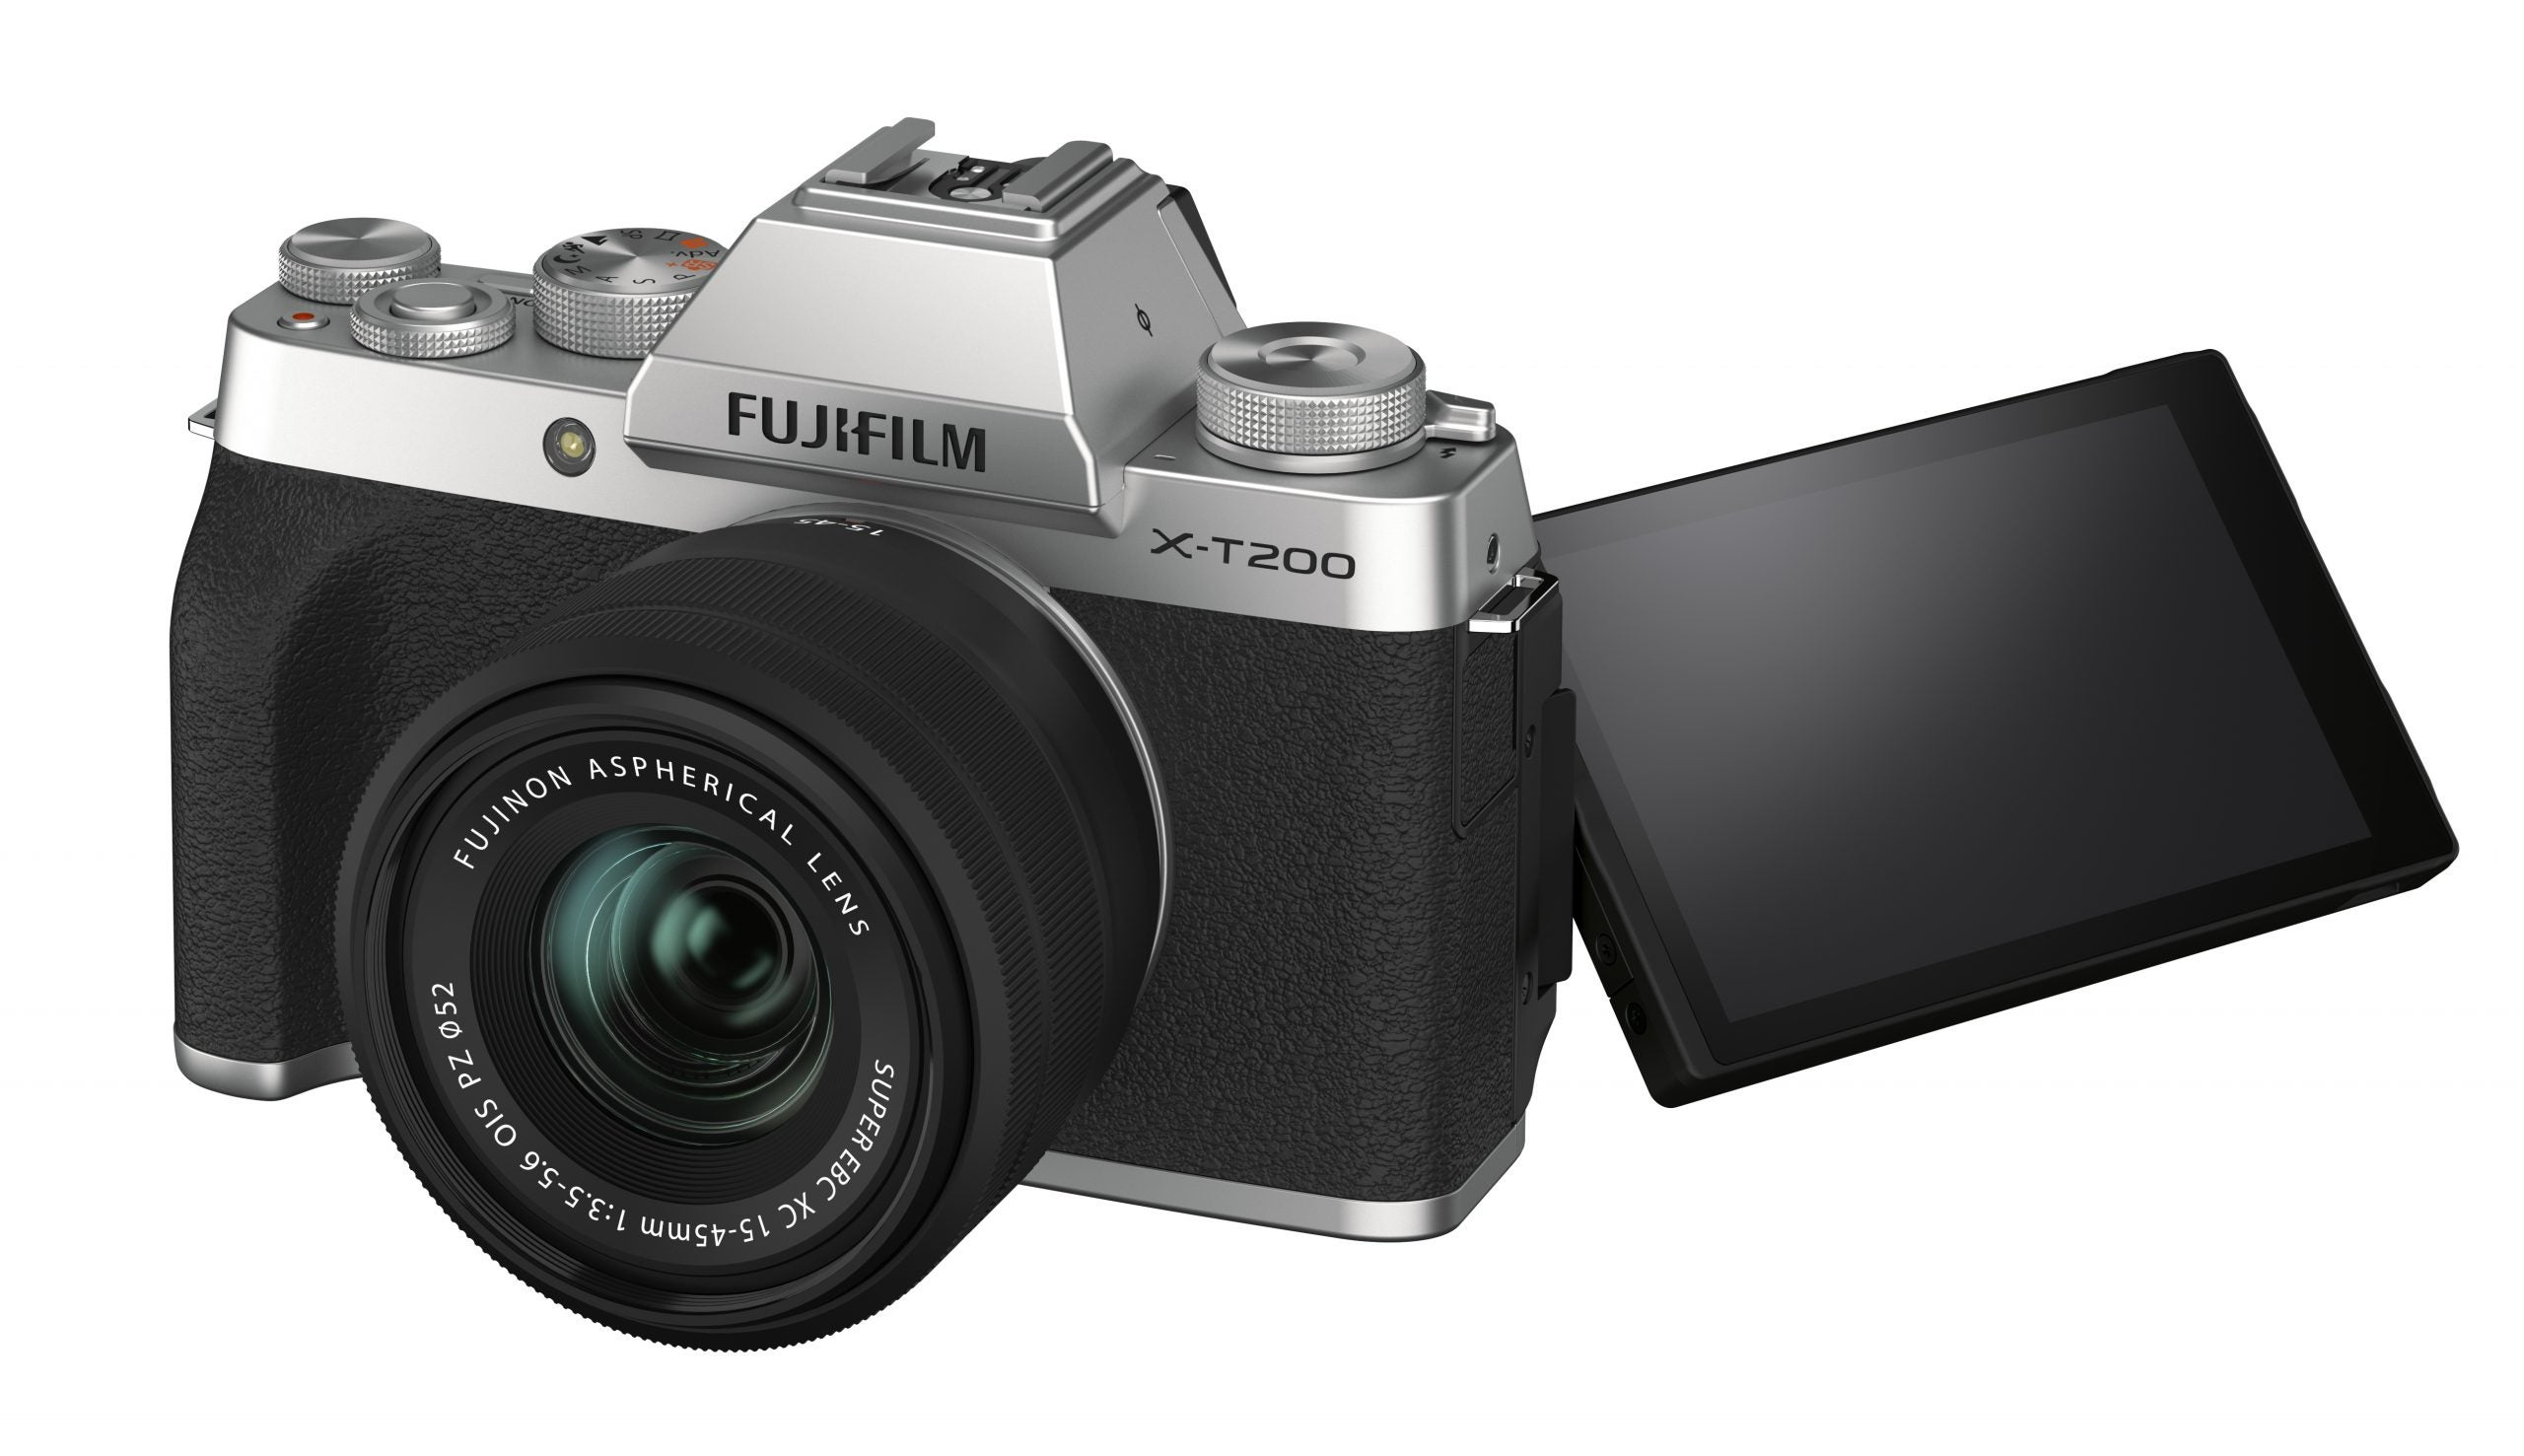 Fujifilm wants you to ditch your iPhone for this mirrorless camera